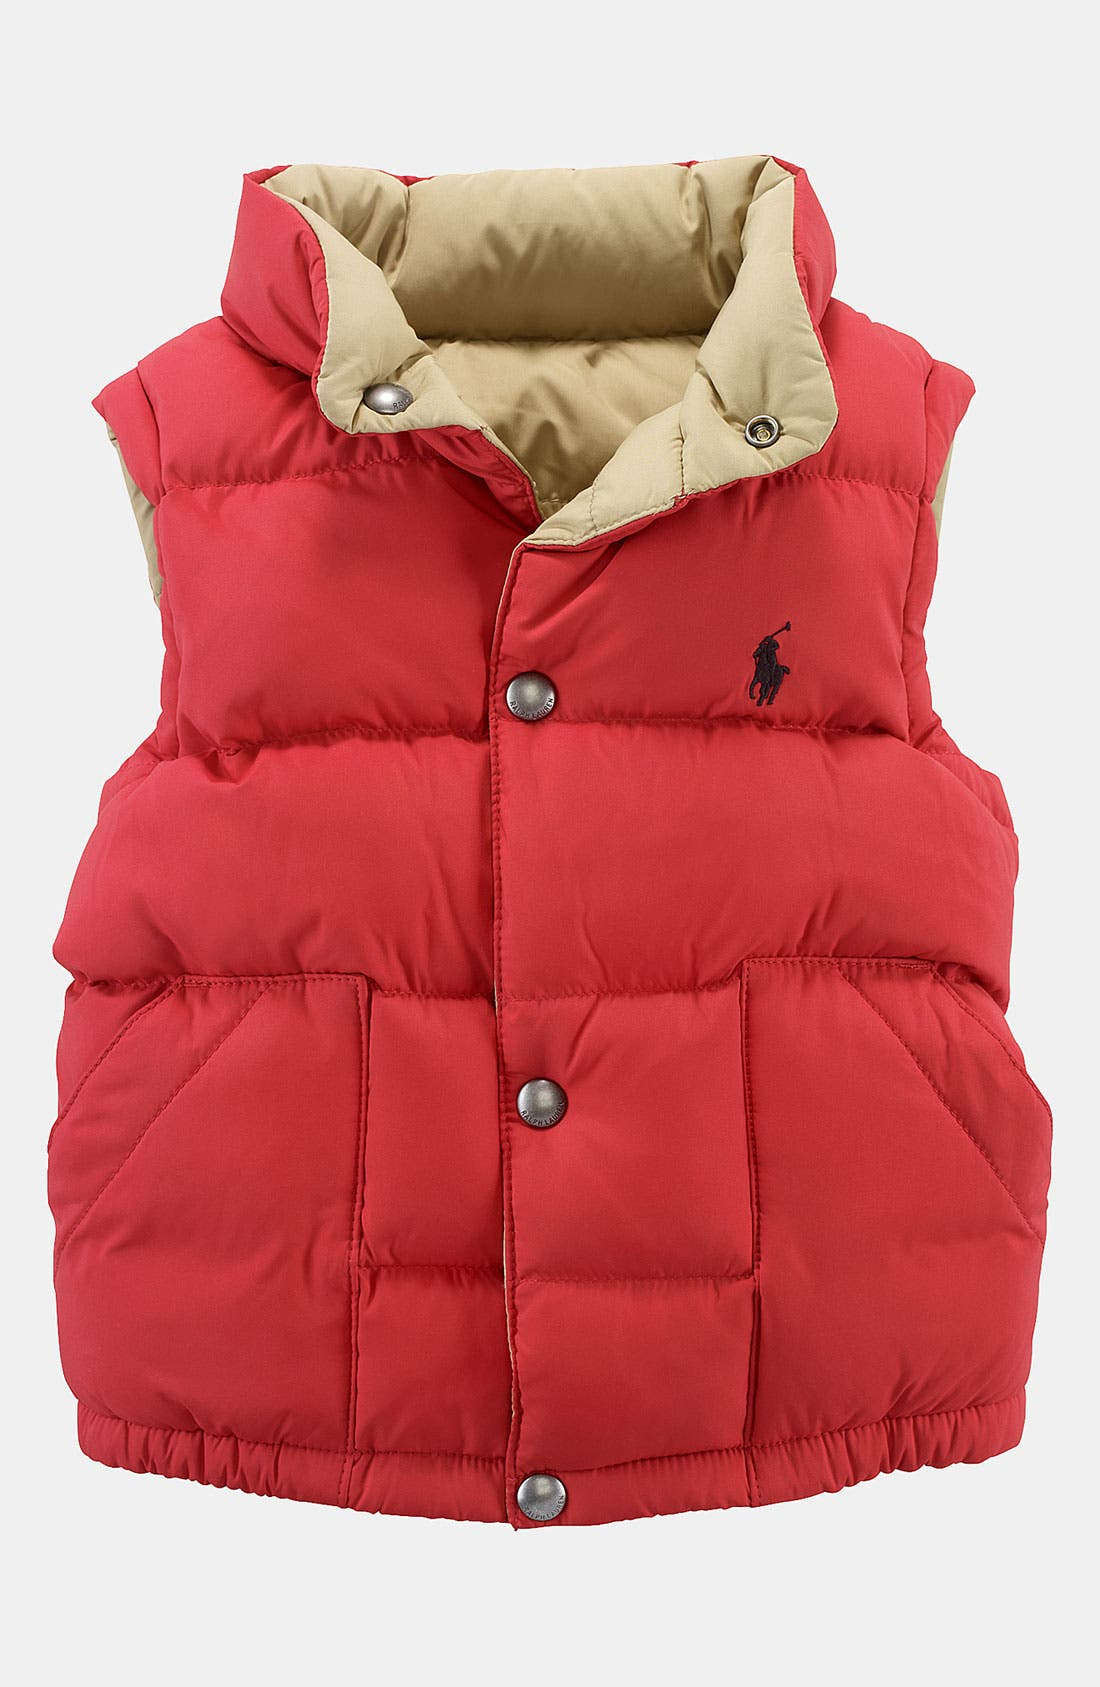 Alternate Image 1 Selected - Ralph Lauren Reversible Puffer Vest (Toddler)